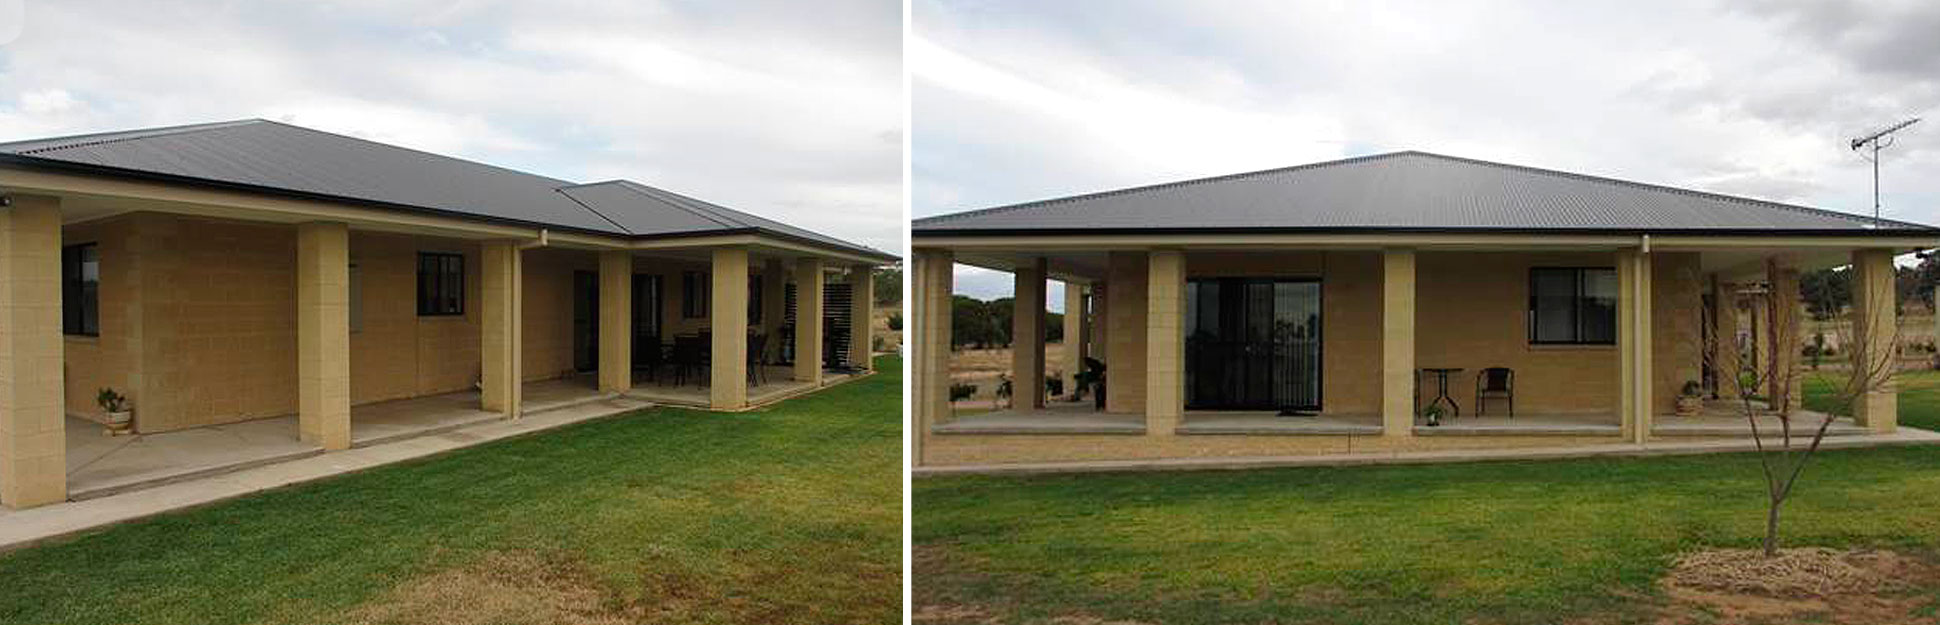 Grenfell Split Face Block Residence | Cowra Concrete Products